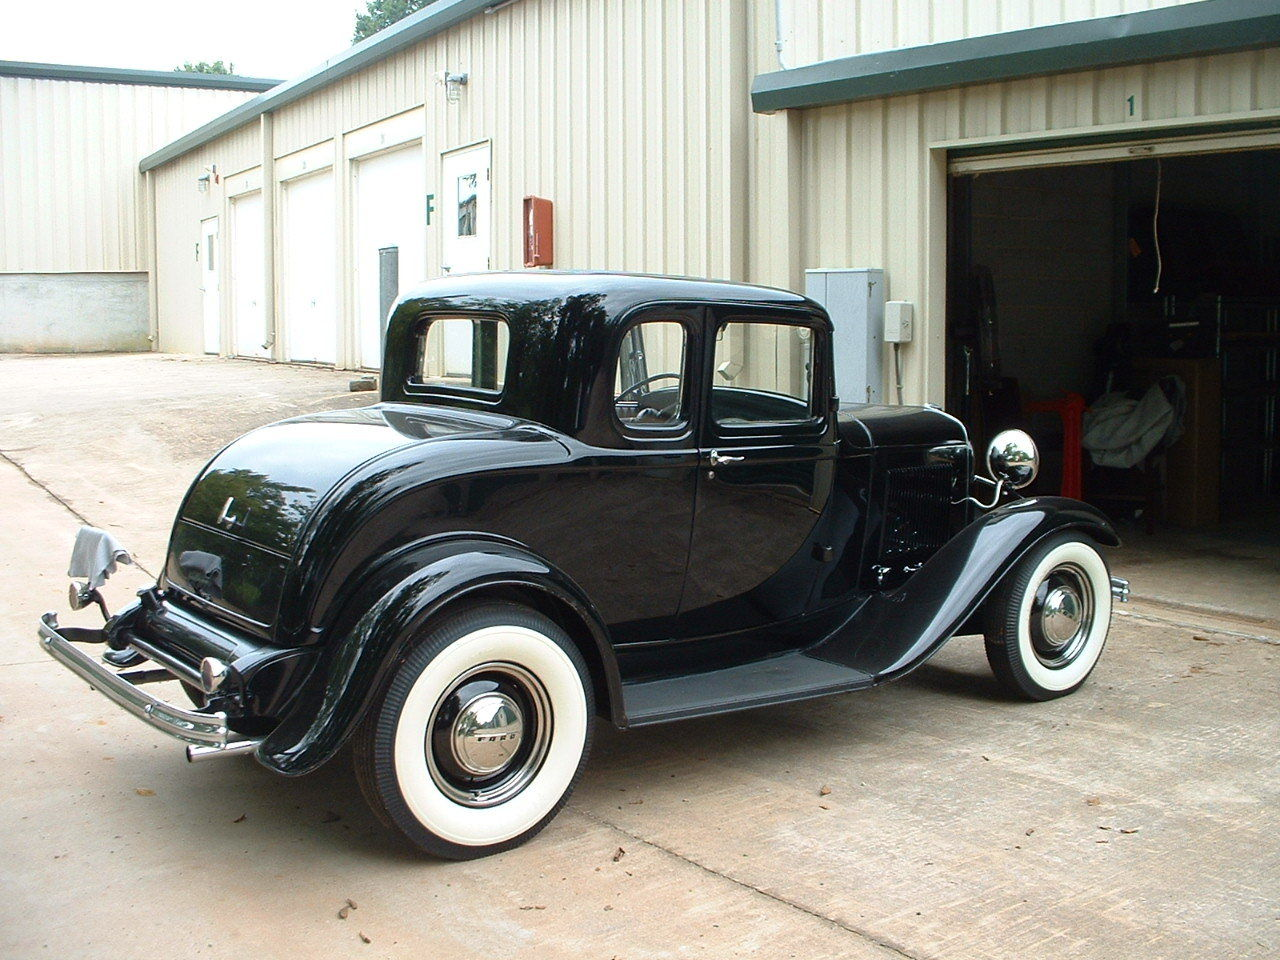 Hot rods 1932 ford 5 window in storage since 1954 for 1932 ford 5 window coupe